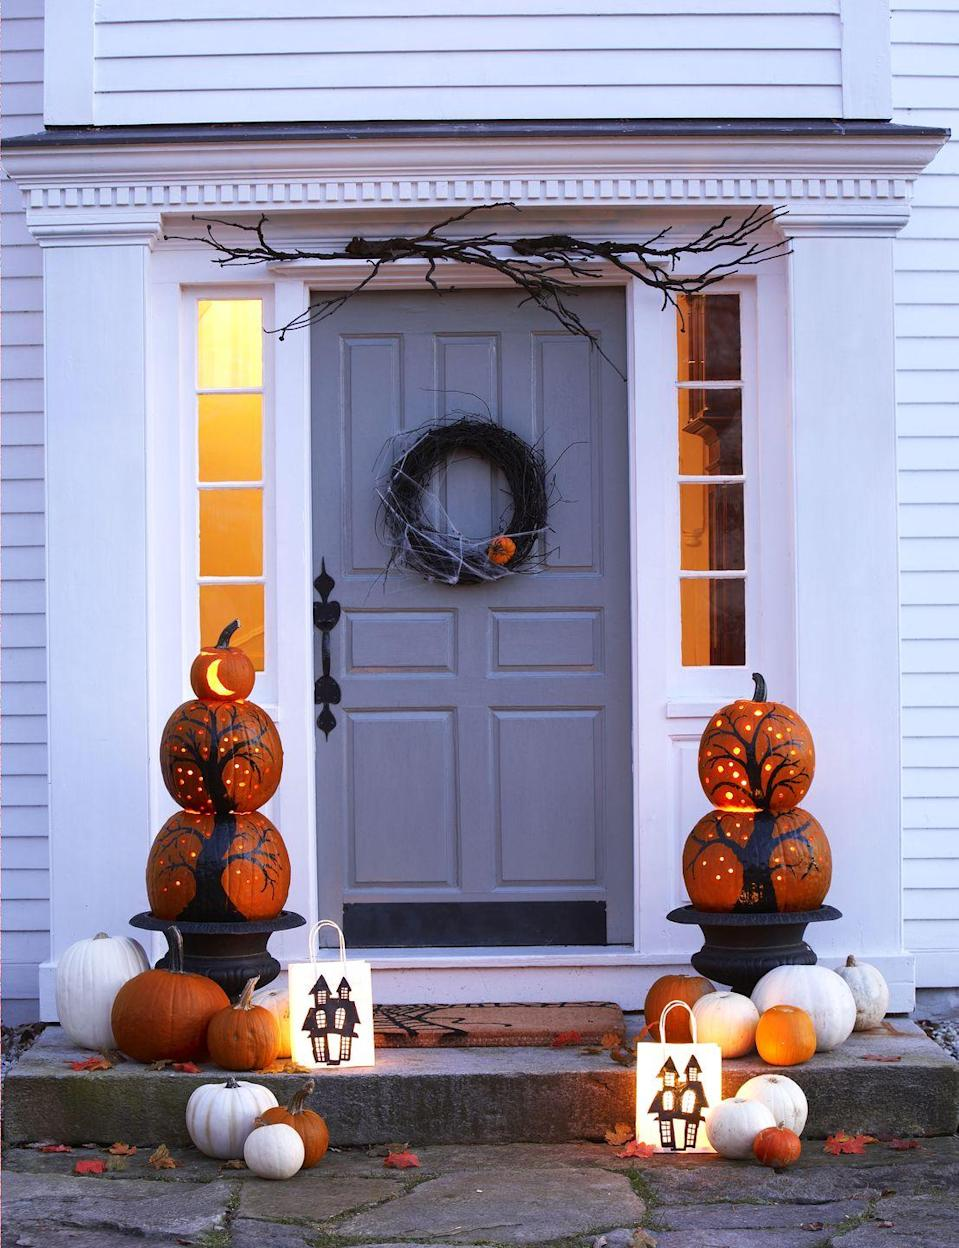 """<p>Illuminate your entryway with a set of adorable LED pumpkins that'll keep all eyes on your home this Halloween.</p><p><a class=""""link rapid-noclick-resp"""" href=""""https://go.redirectingat.com?id=74968X1596630&url=https%3A%2F%2Fwww.overstock.com%2FLighting-Ceiling-Fans%2FLED-Pumpkin-Light-Battery-Operated-Orange-1.75-Height-x-3-Diameter%2F31320659%2Fproduct.html&sref=https%3A%2F%2Fwww.goodhousekeeping.com%2Fholidays%2Fhalloween-ideas%2Fg32948621%2Fhalloween-door-decorations%2F"""" rel=""""nofollow noopener"""" target=""""_blank"""" data-ylk=""""slk:SHOP LED PUMPKINS"""">SHOP LED PUMPKINS</a></p>"""